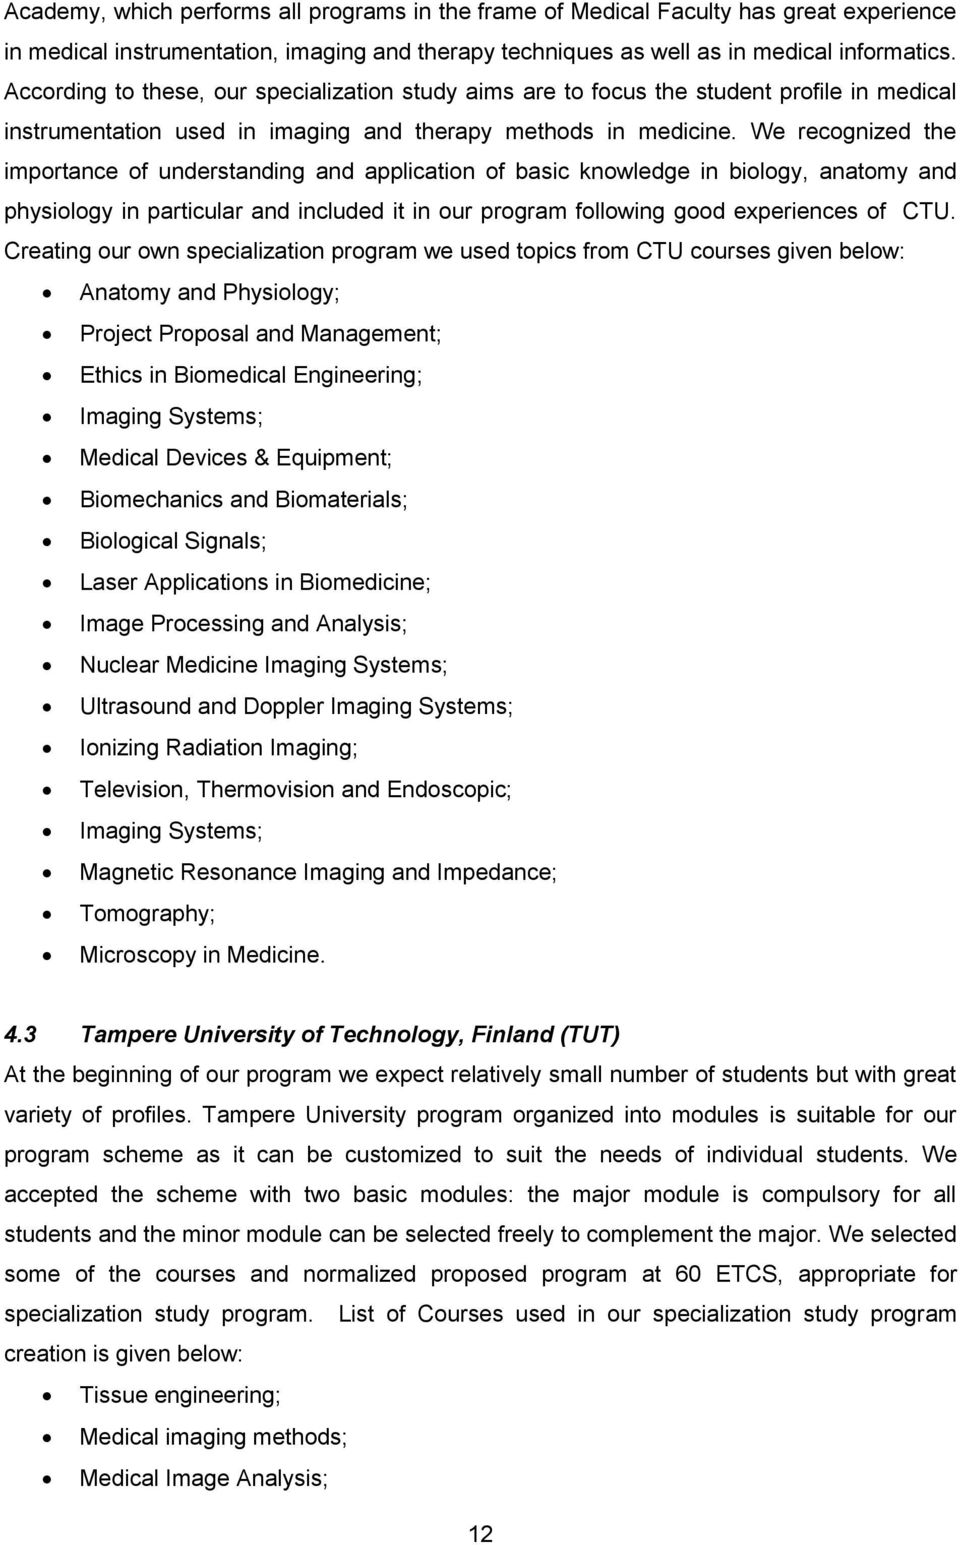 Curricula review for Bioengineering and Medical Informatics